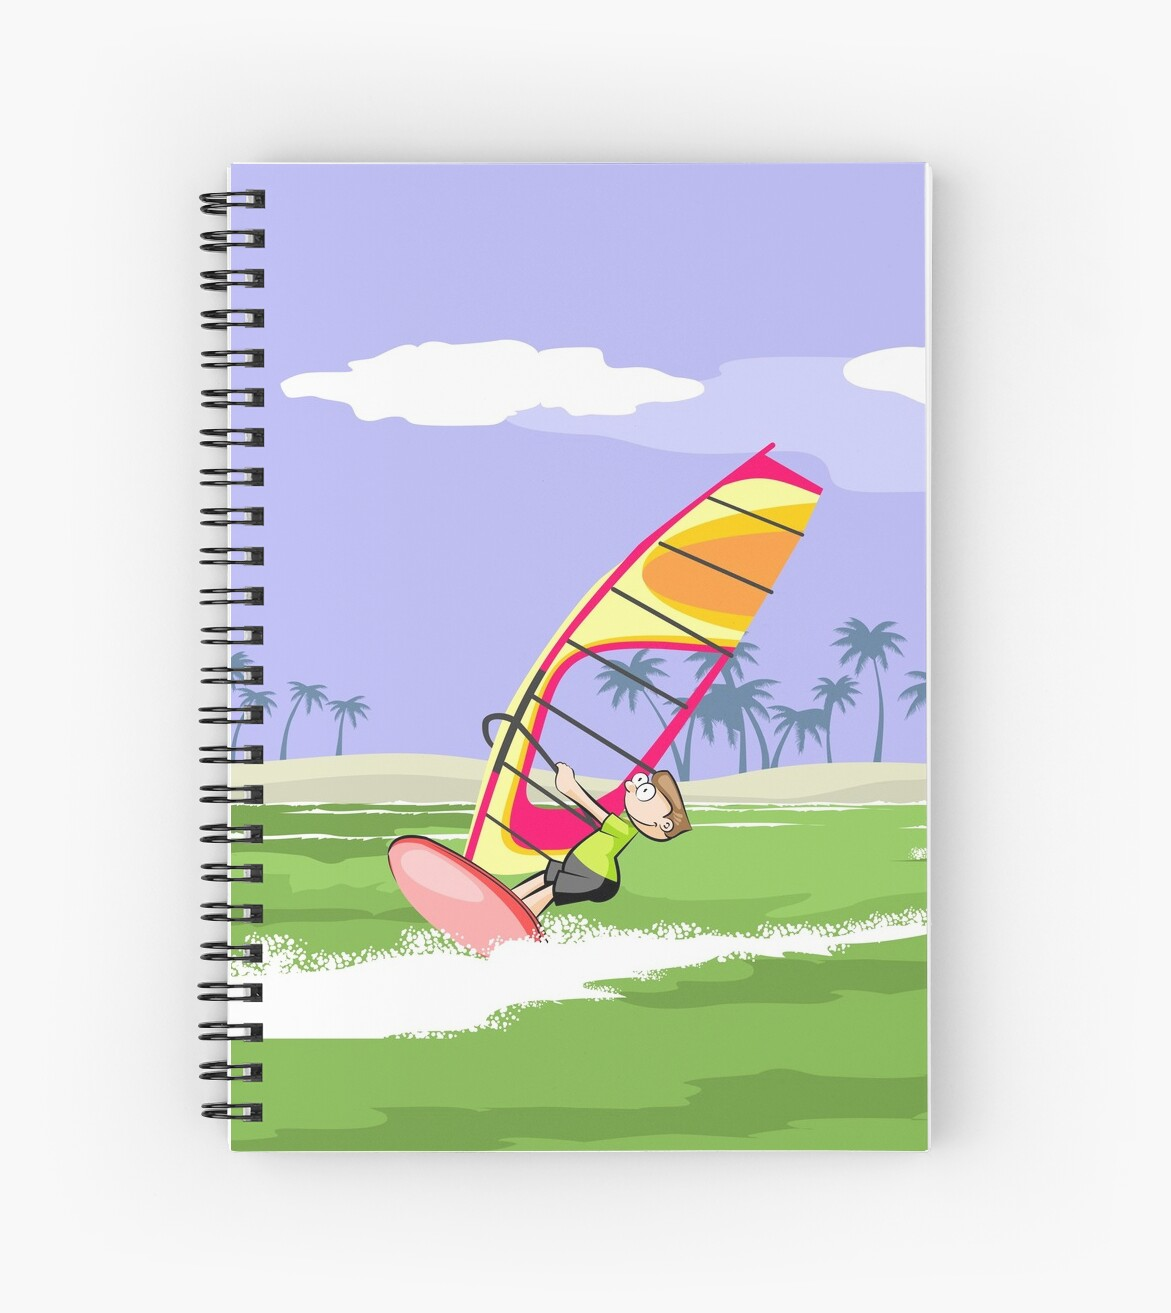 Windsurfing boy in action by MegaSitioDesign